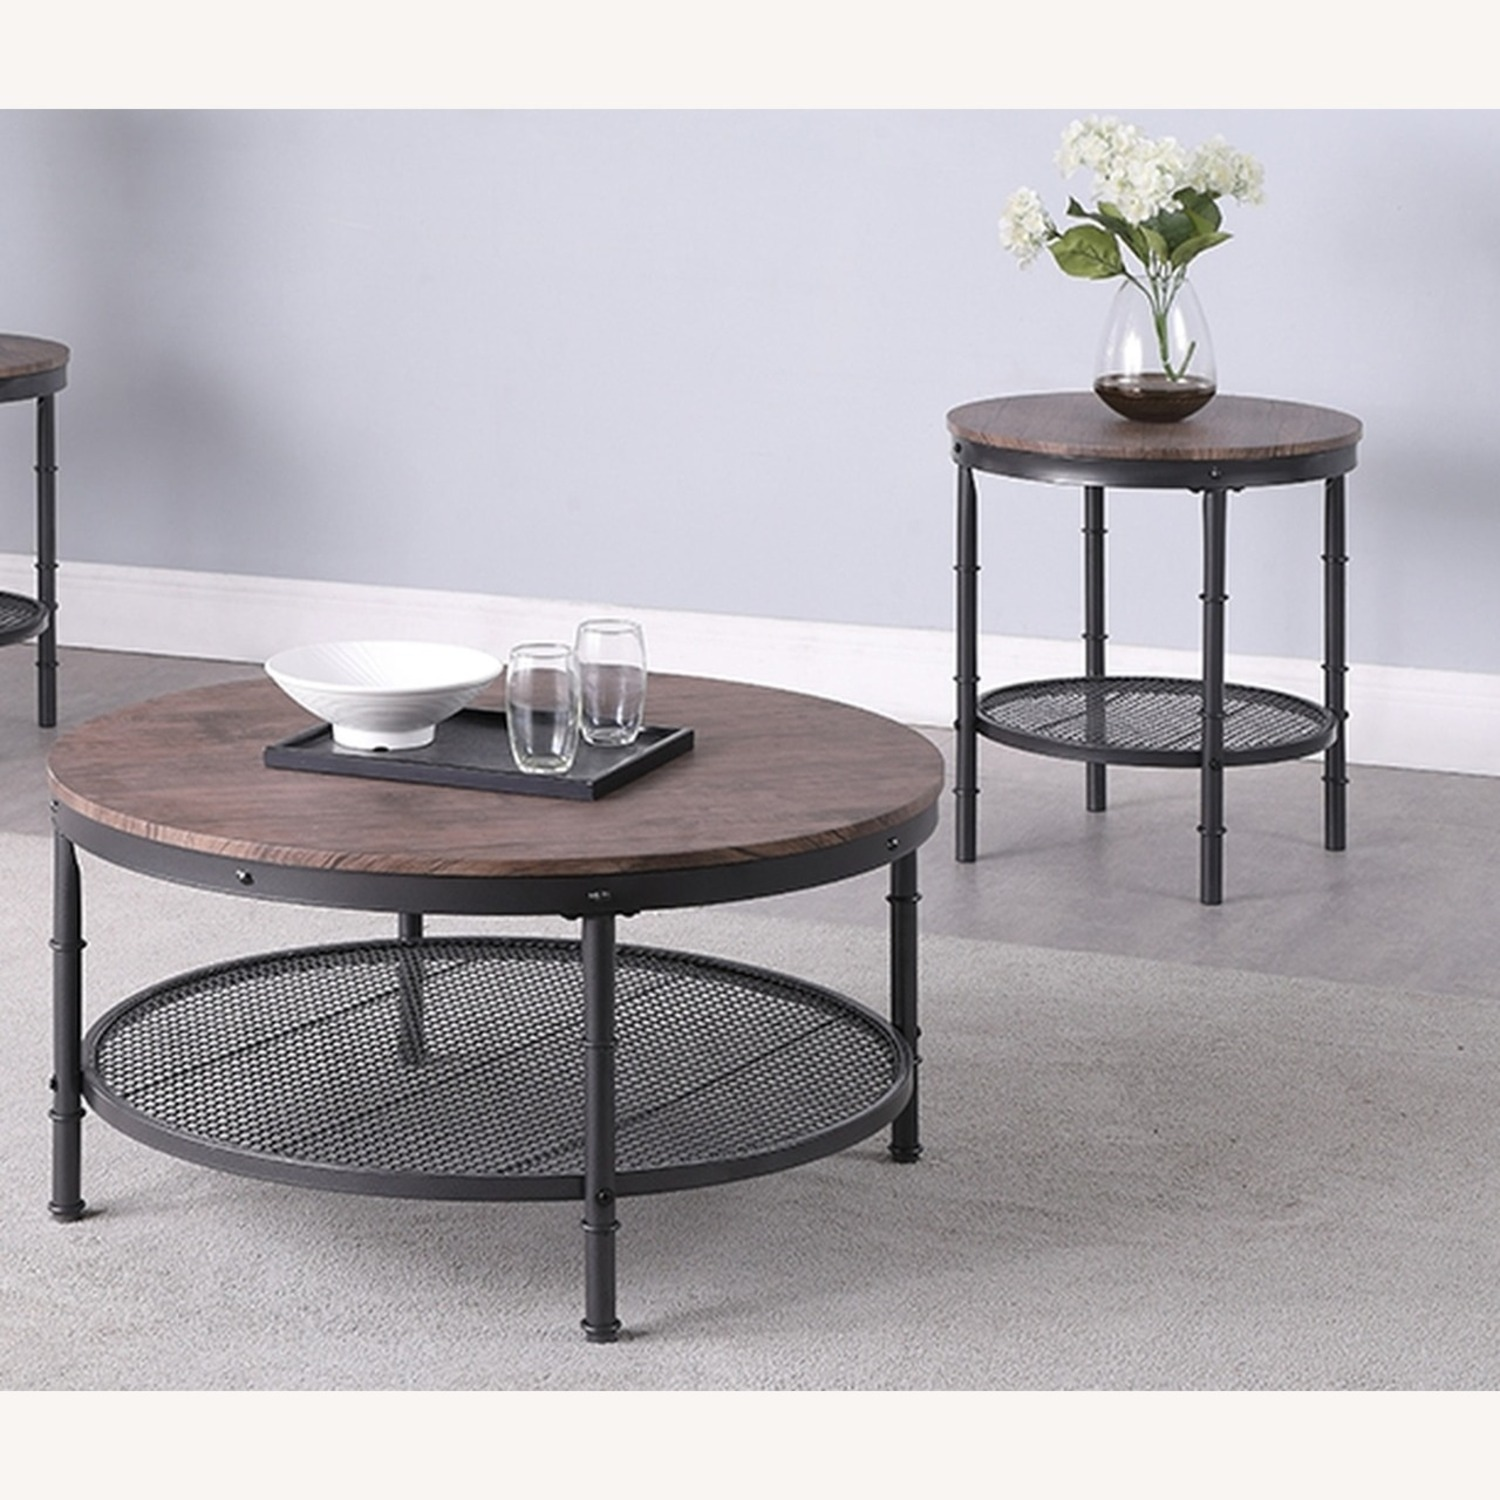 3-Piece Occasional Table In Weathered Brown Finish - image-2